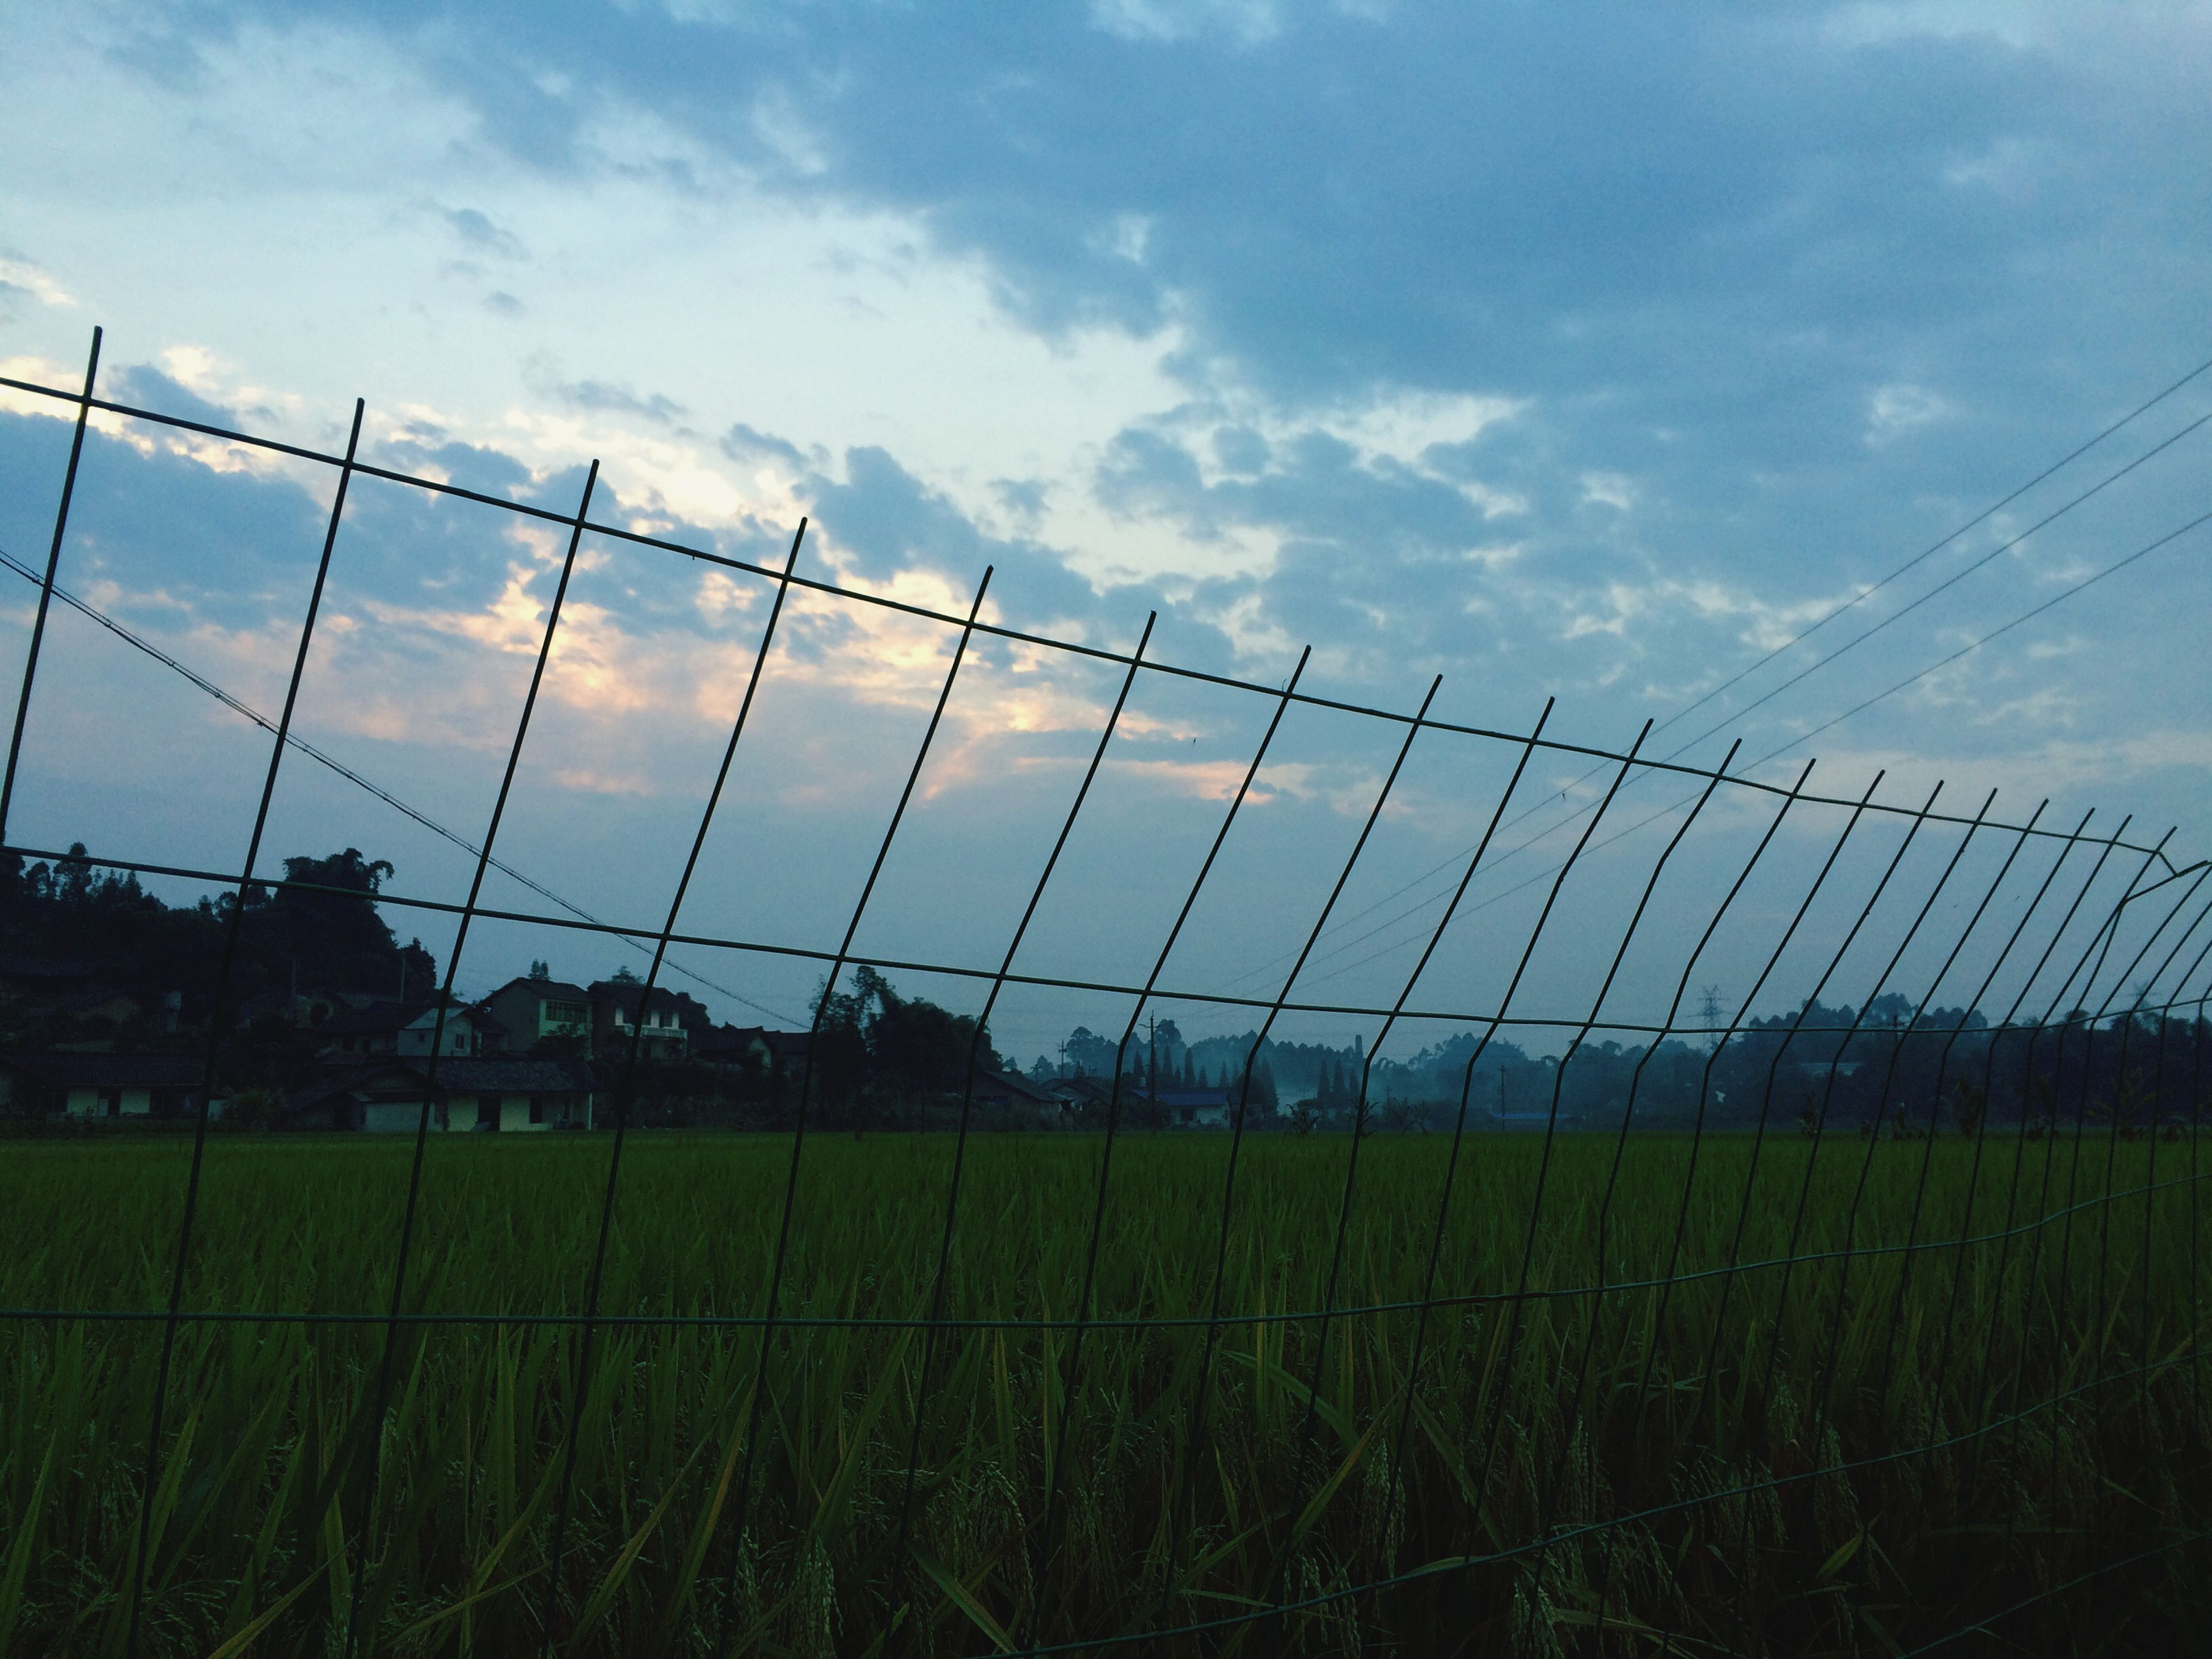 sky, field, grass, landscape, cloud - sky, fence, rural scene, cloud, agriculture, nature, growth, farm, cloudy, green color, grassy, tranquility, tranquil scene, protection, no people, outdoors